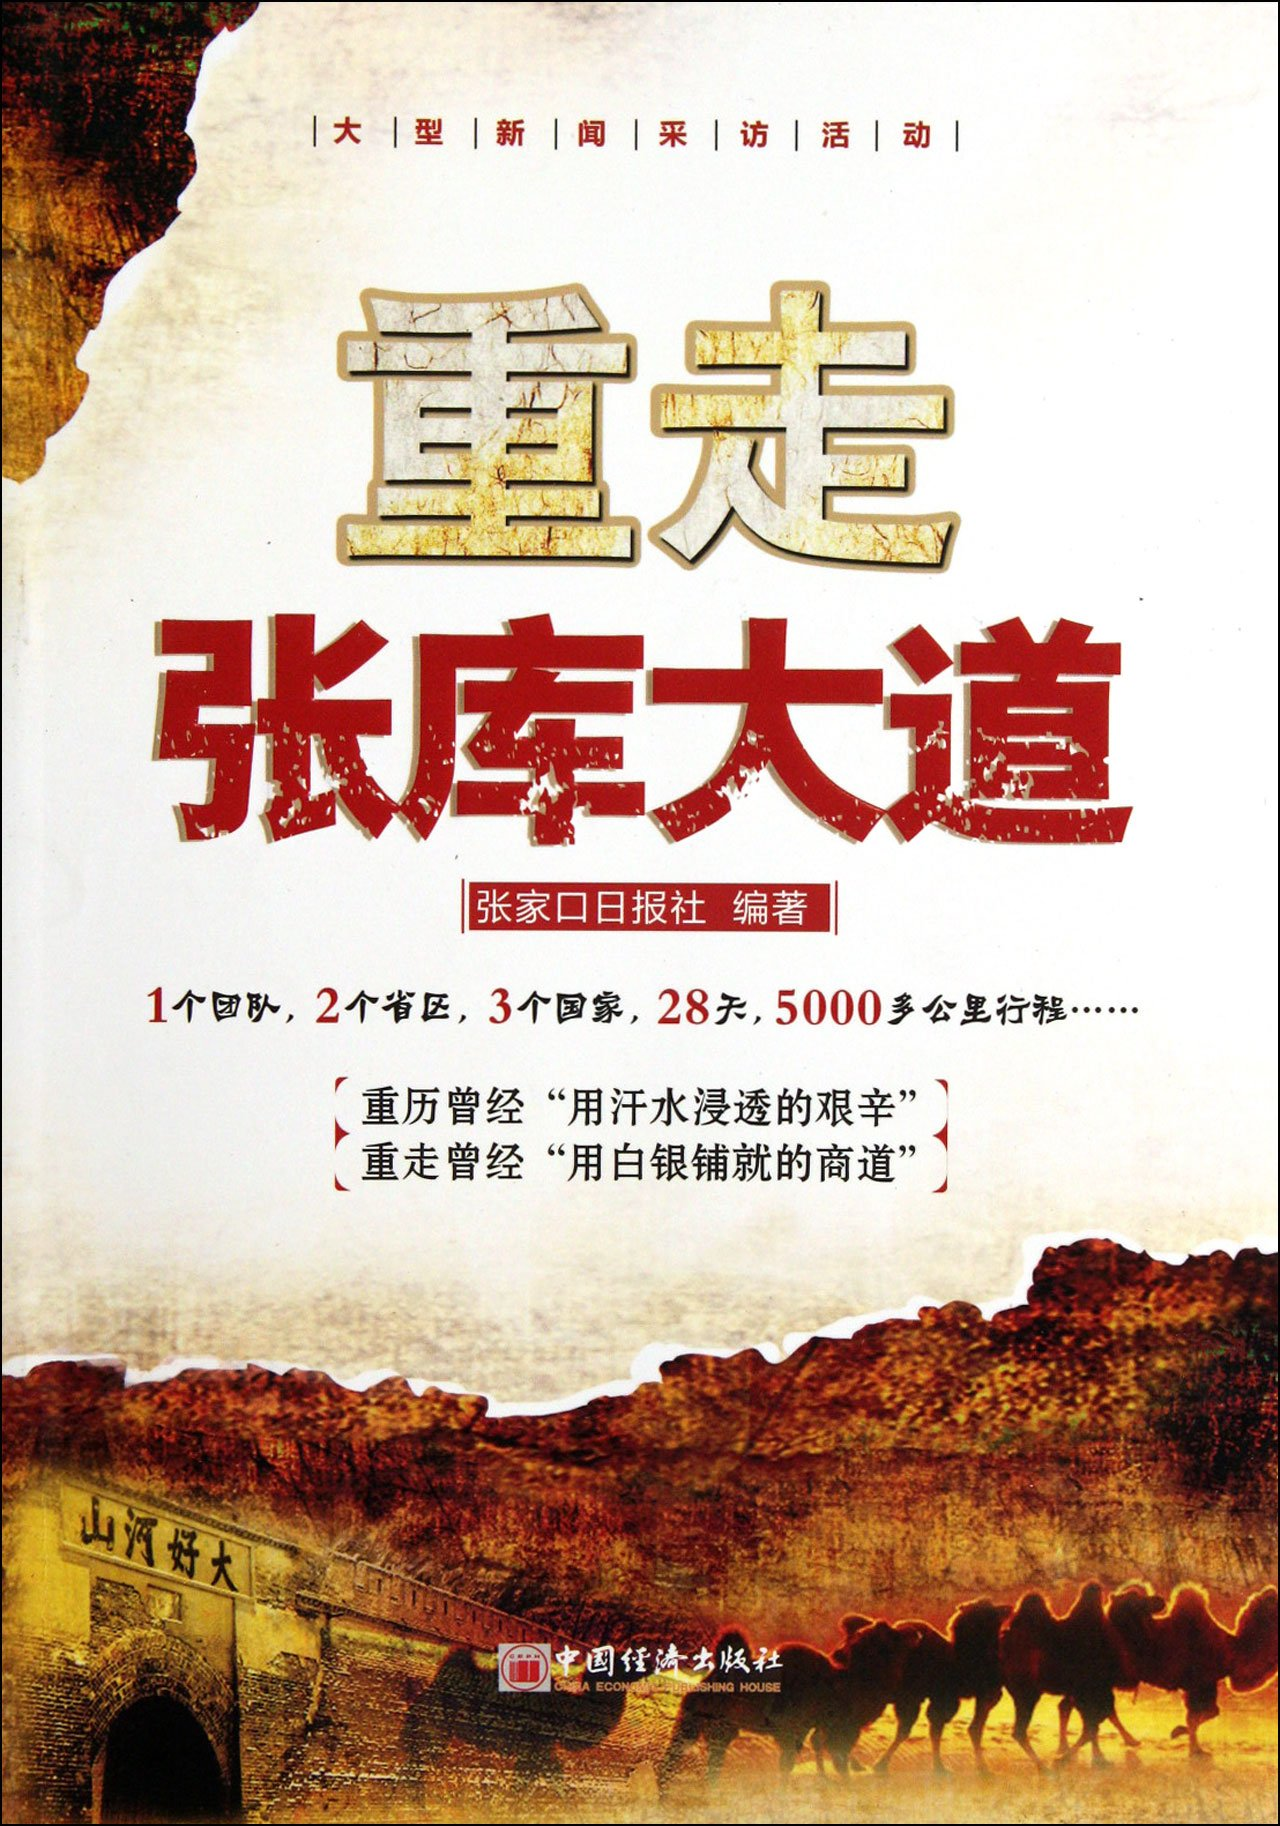 Download Walking on the Zhangku Road Again (Chinese Edition) ebook